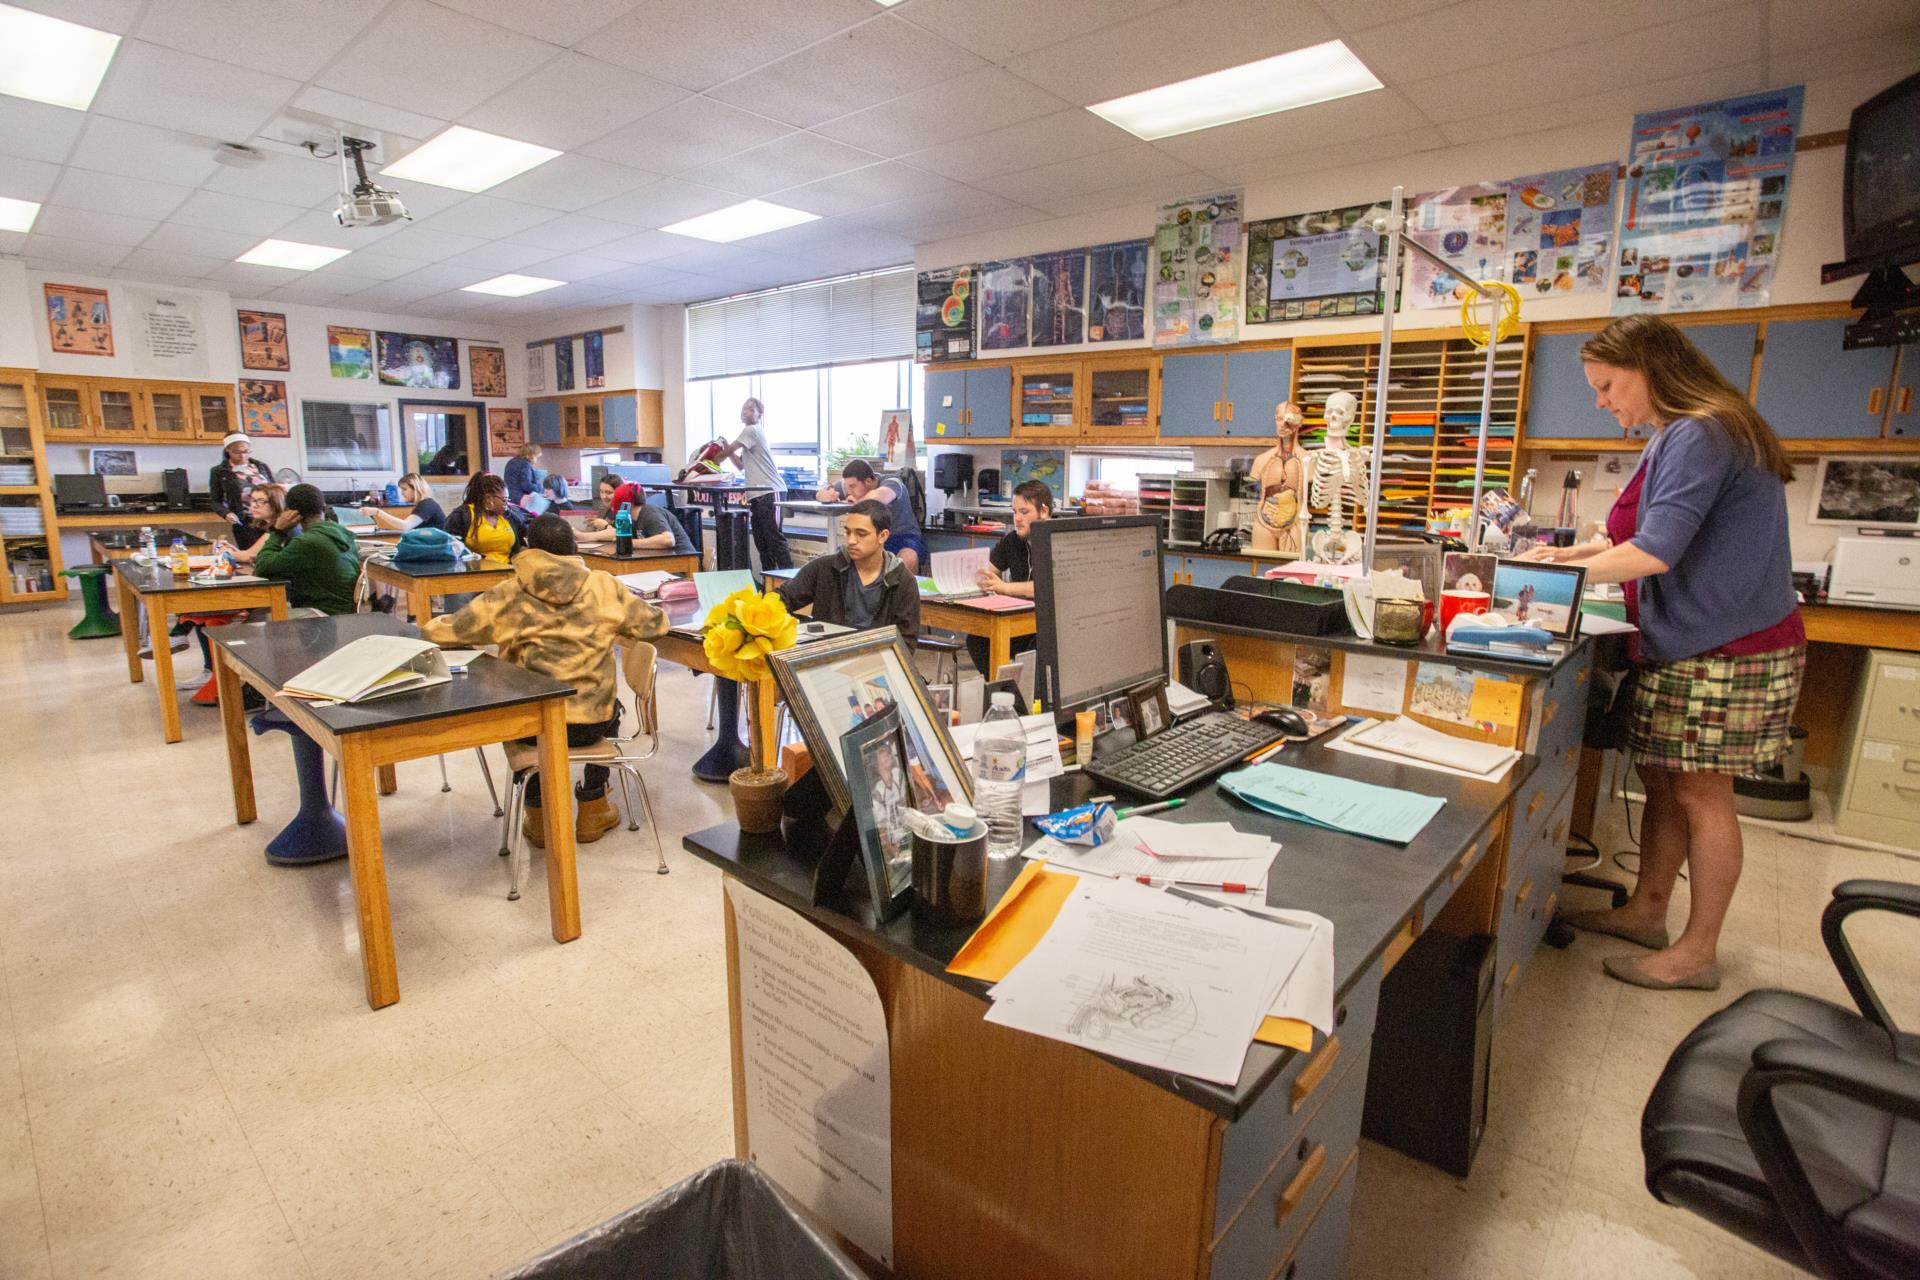 Sara Miller, Science teacher's classroom with students